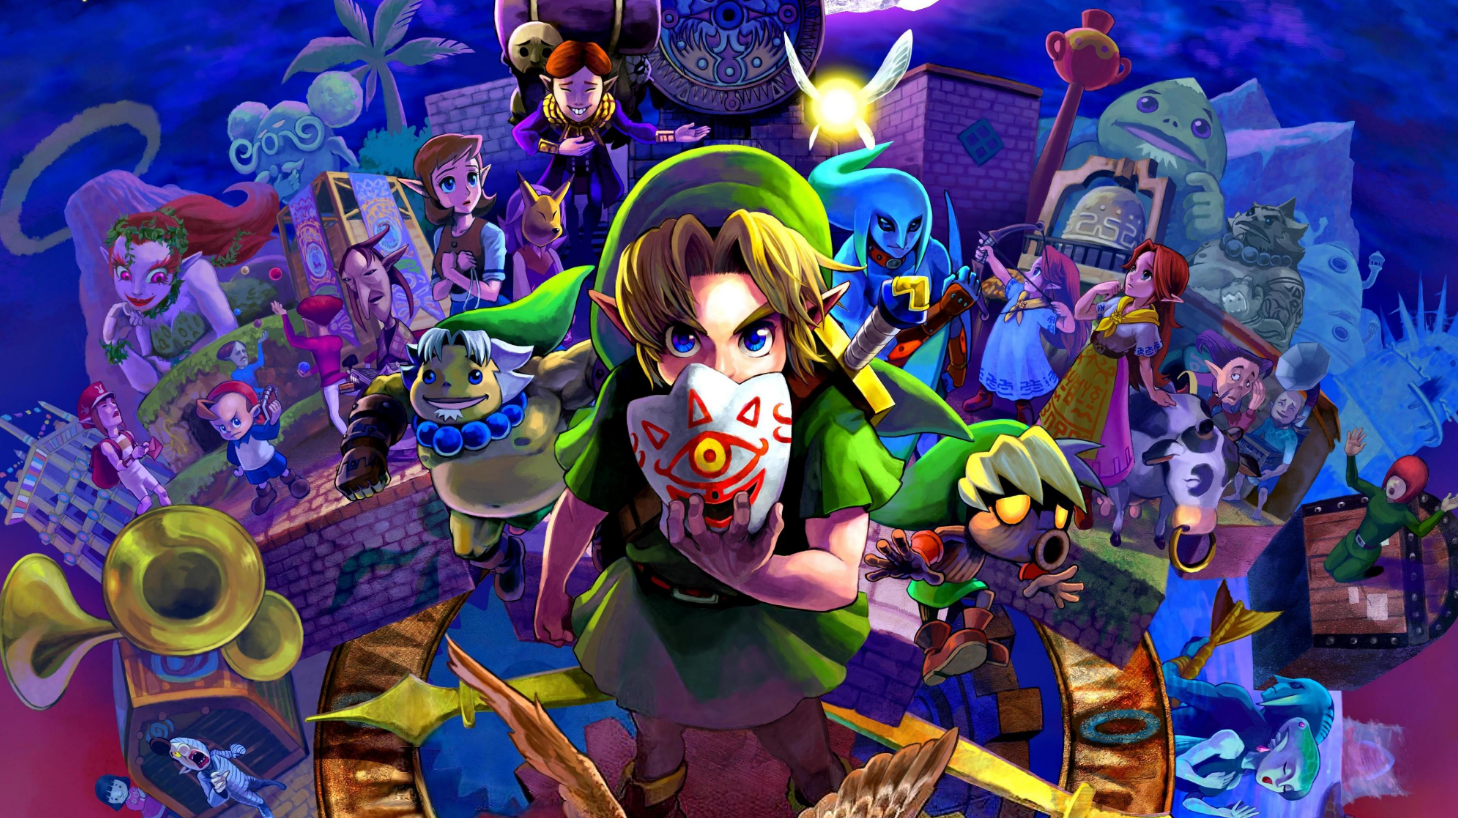 Players Find Holy Grail Of Majora's Mask Speedrunning